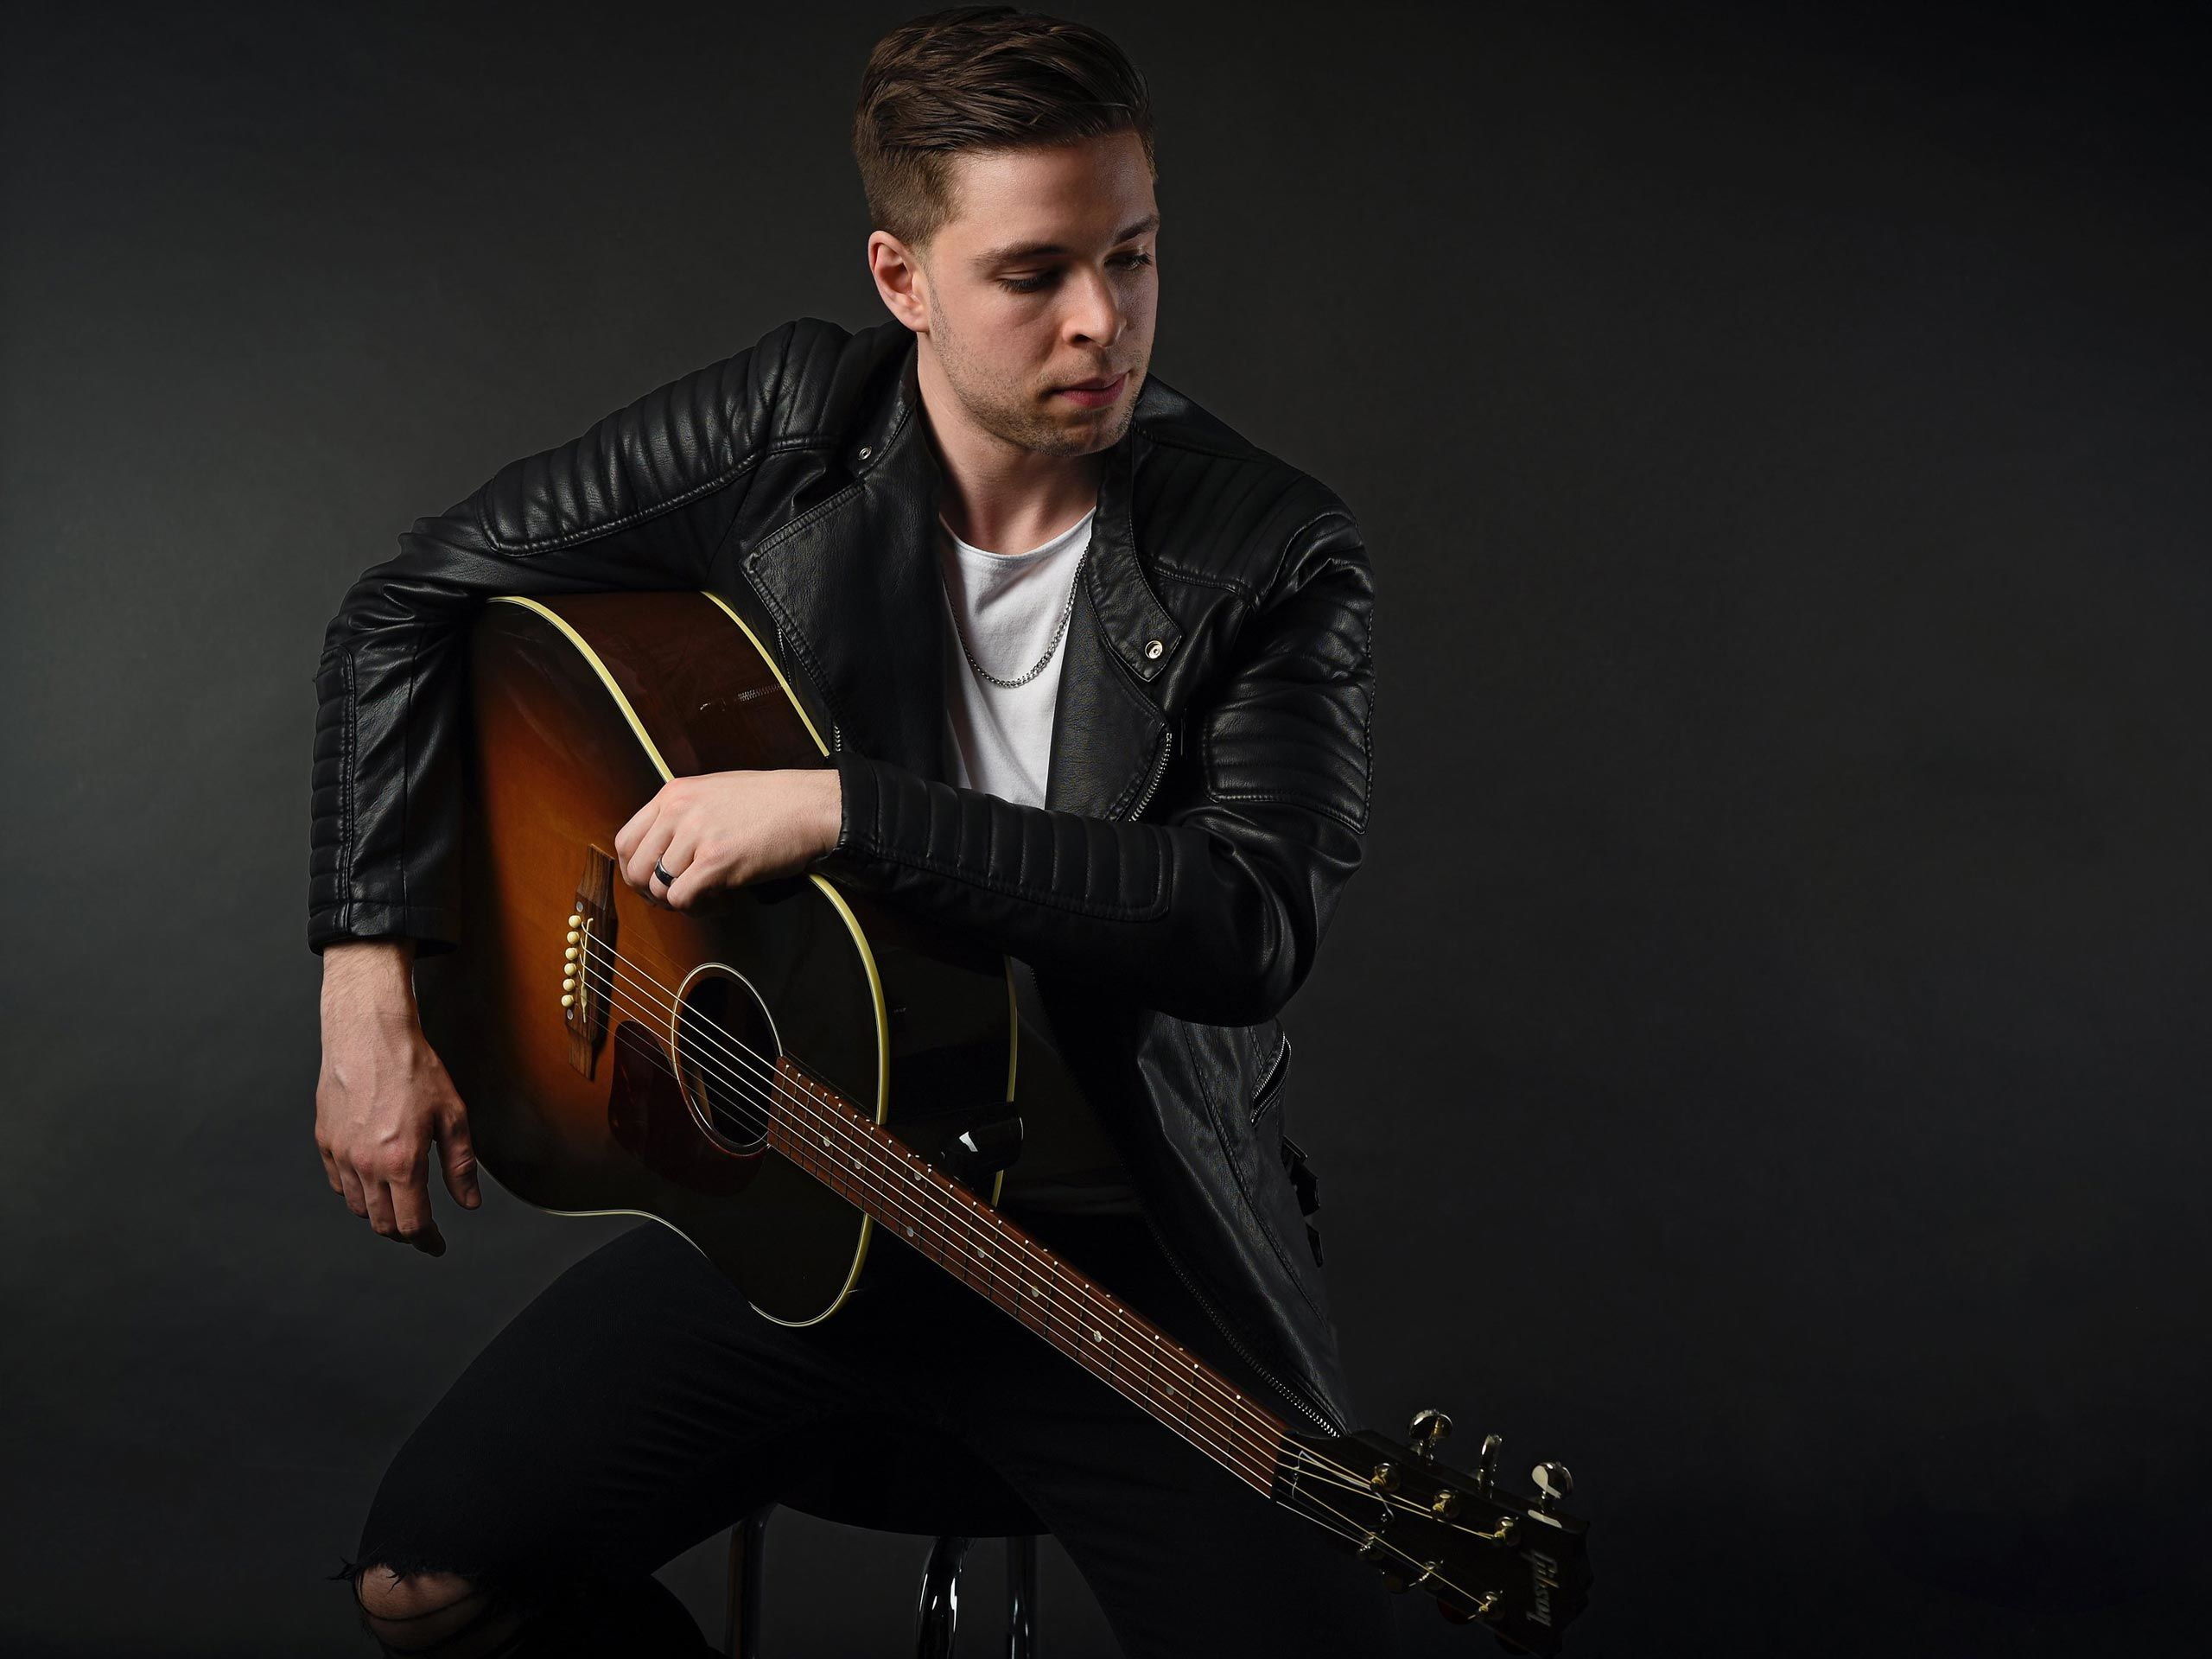 Promotional picture of Reno Gabriel, sitting on a barstool with his Gibson guitar, in a photo studio with a dark background